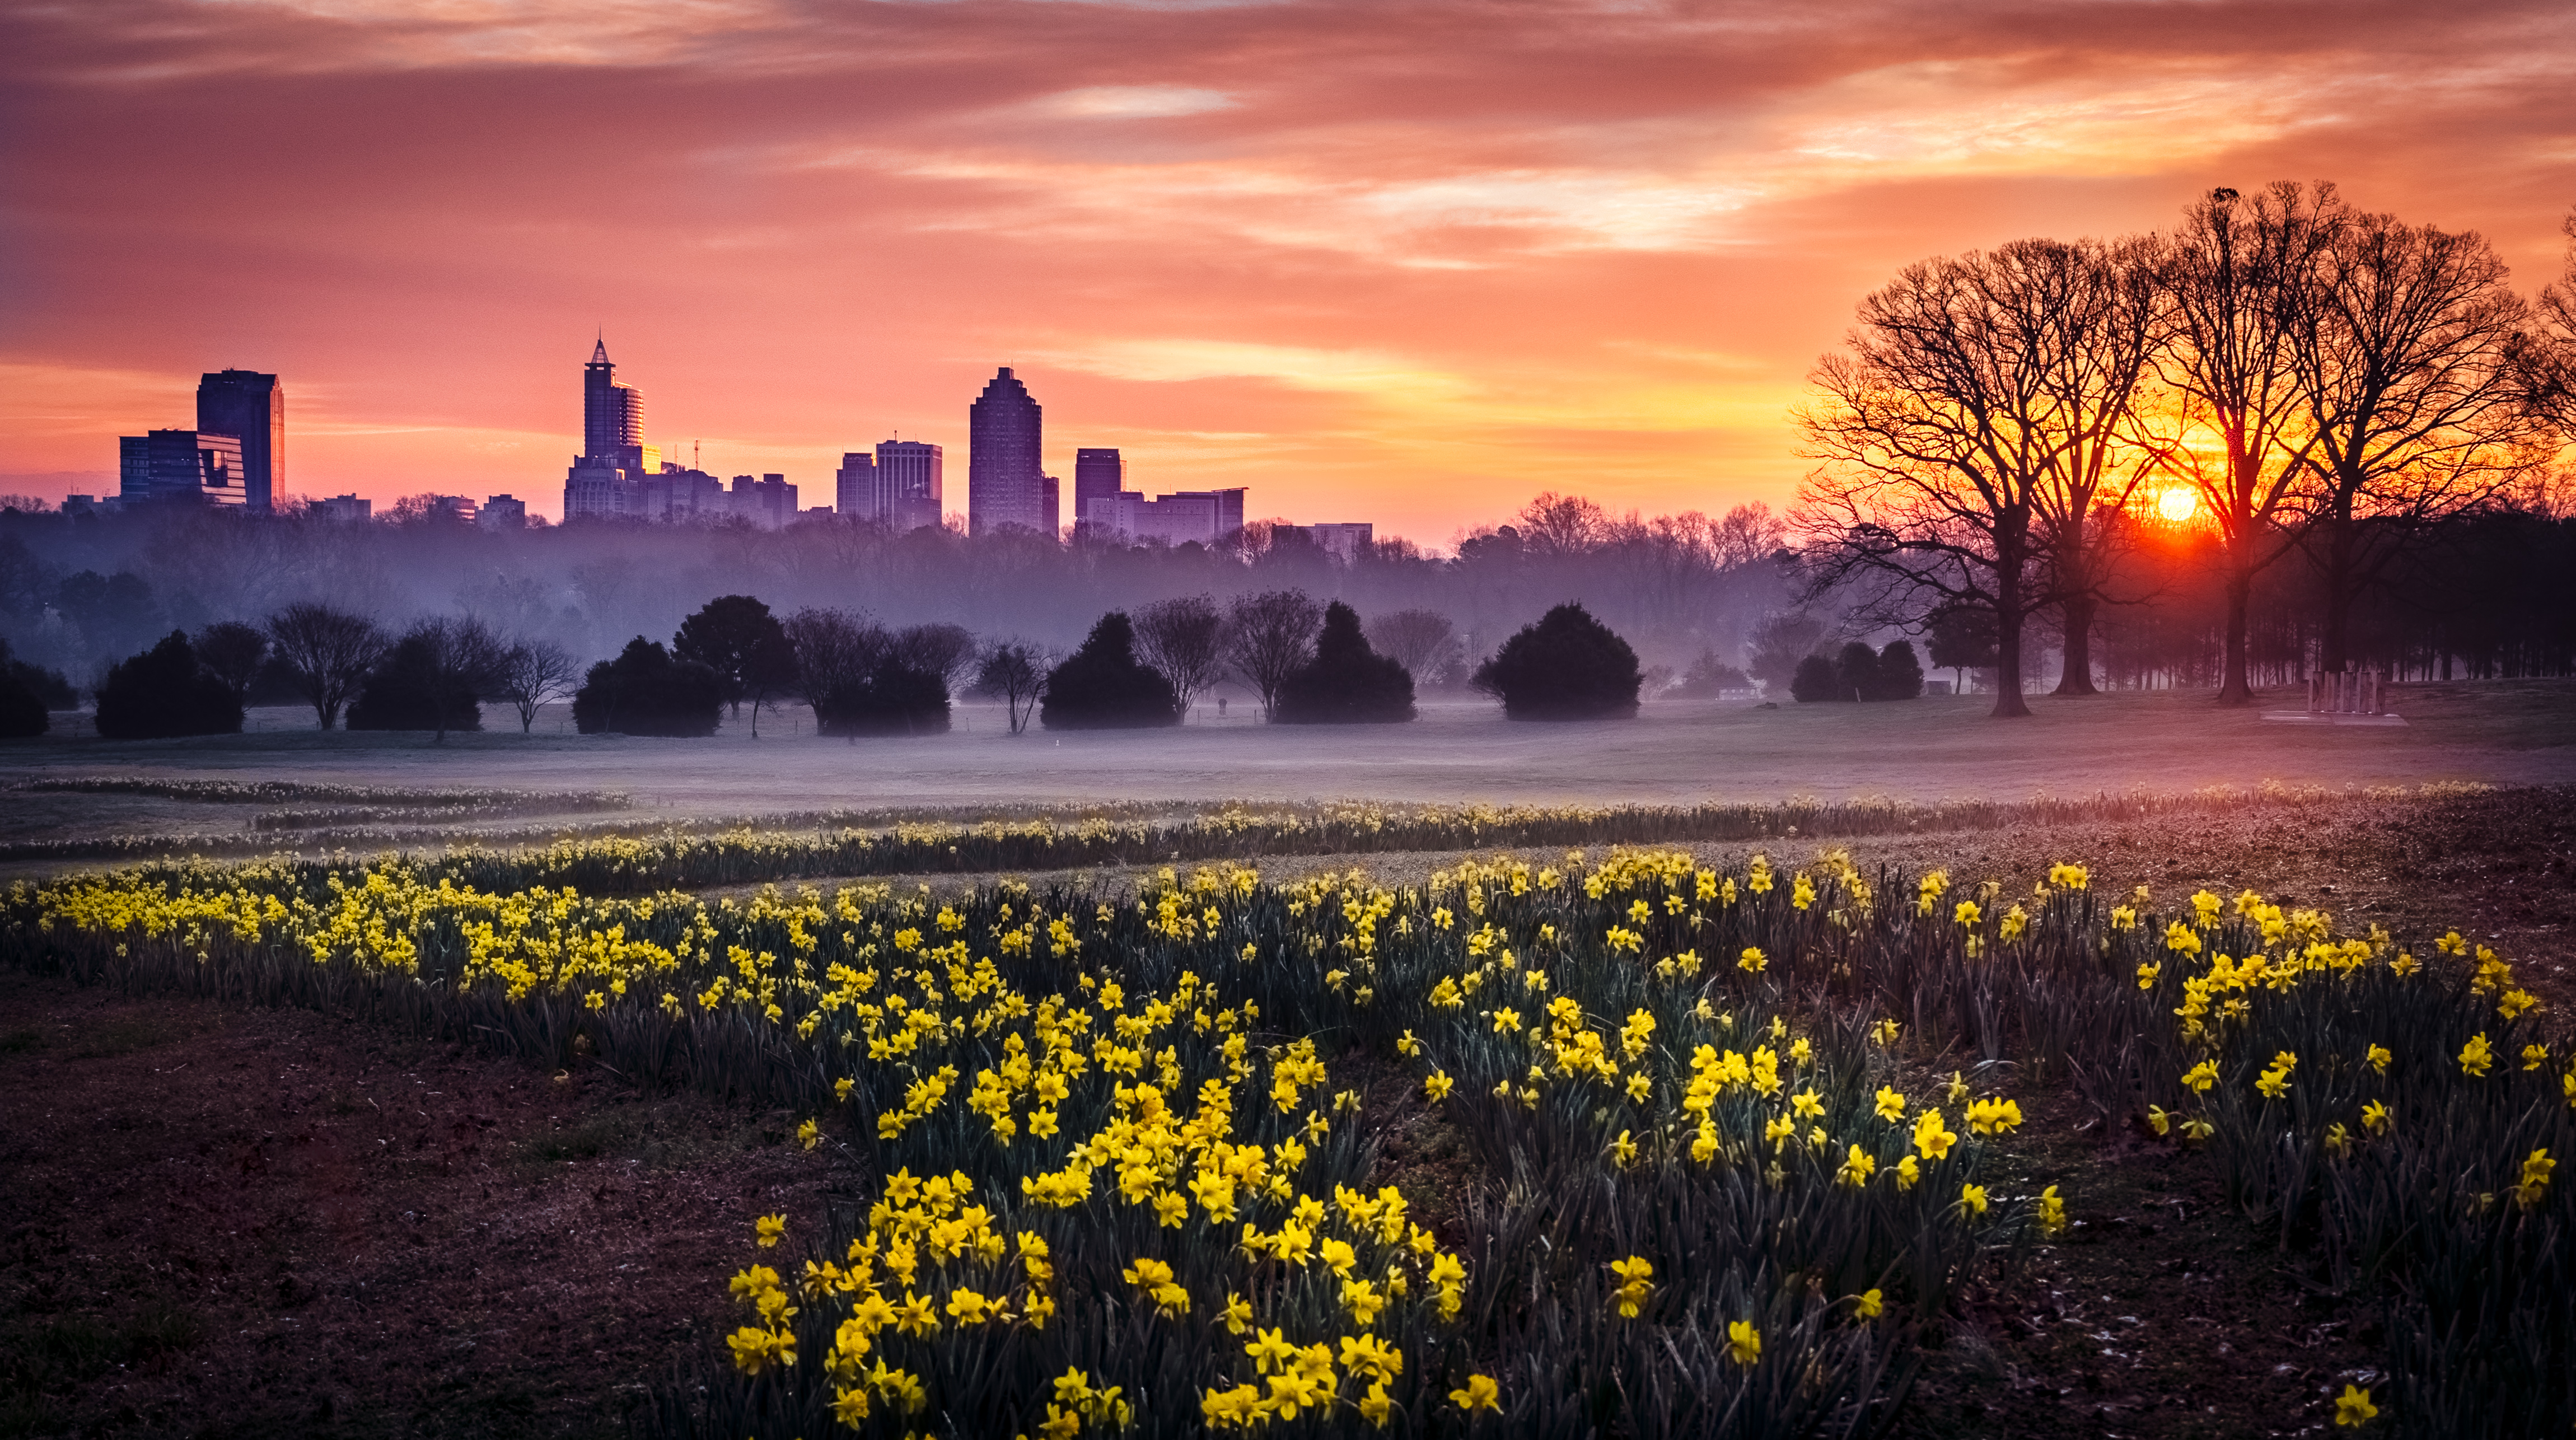 Sunrise over Raleigh, NC seen from Jonquil field at Dix Park